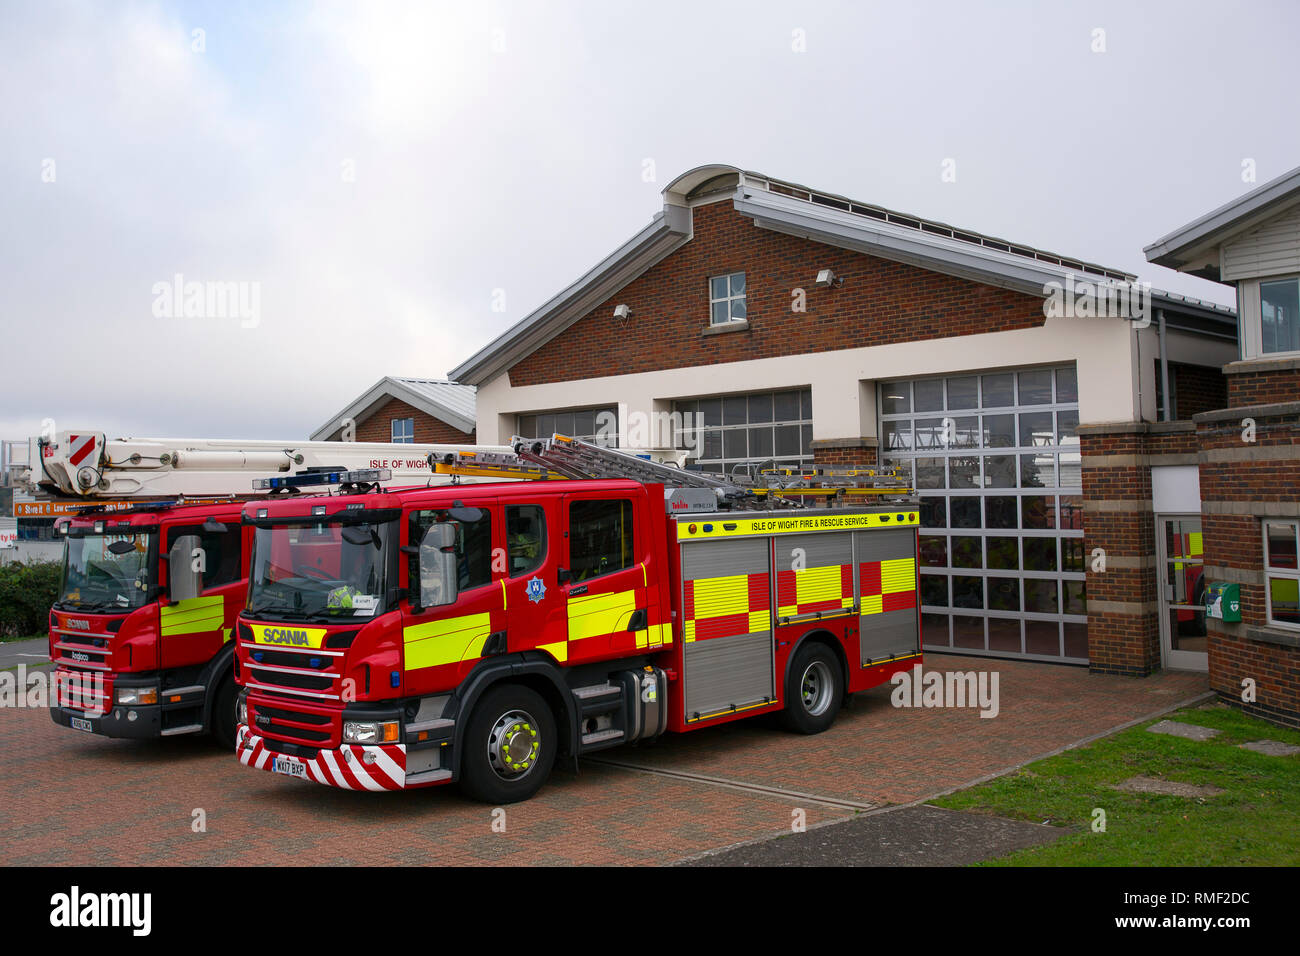 Fire Engines, Ryde Firestation, Ryde, Isle Wight, England, UK, - Stock Image